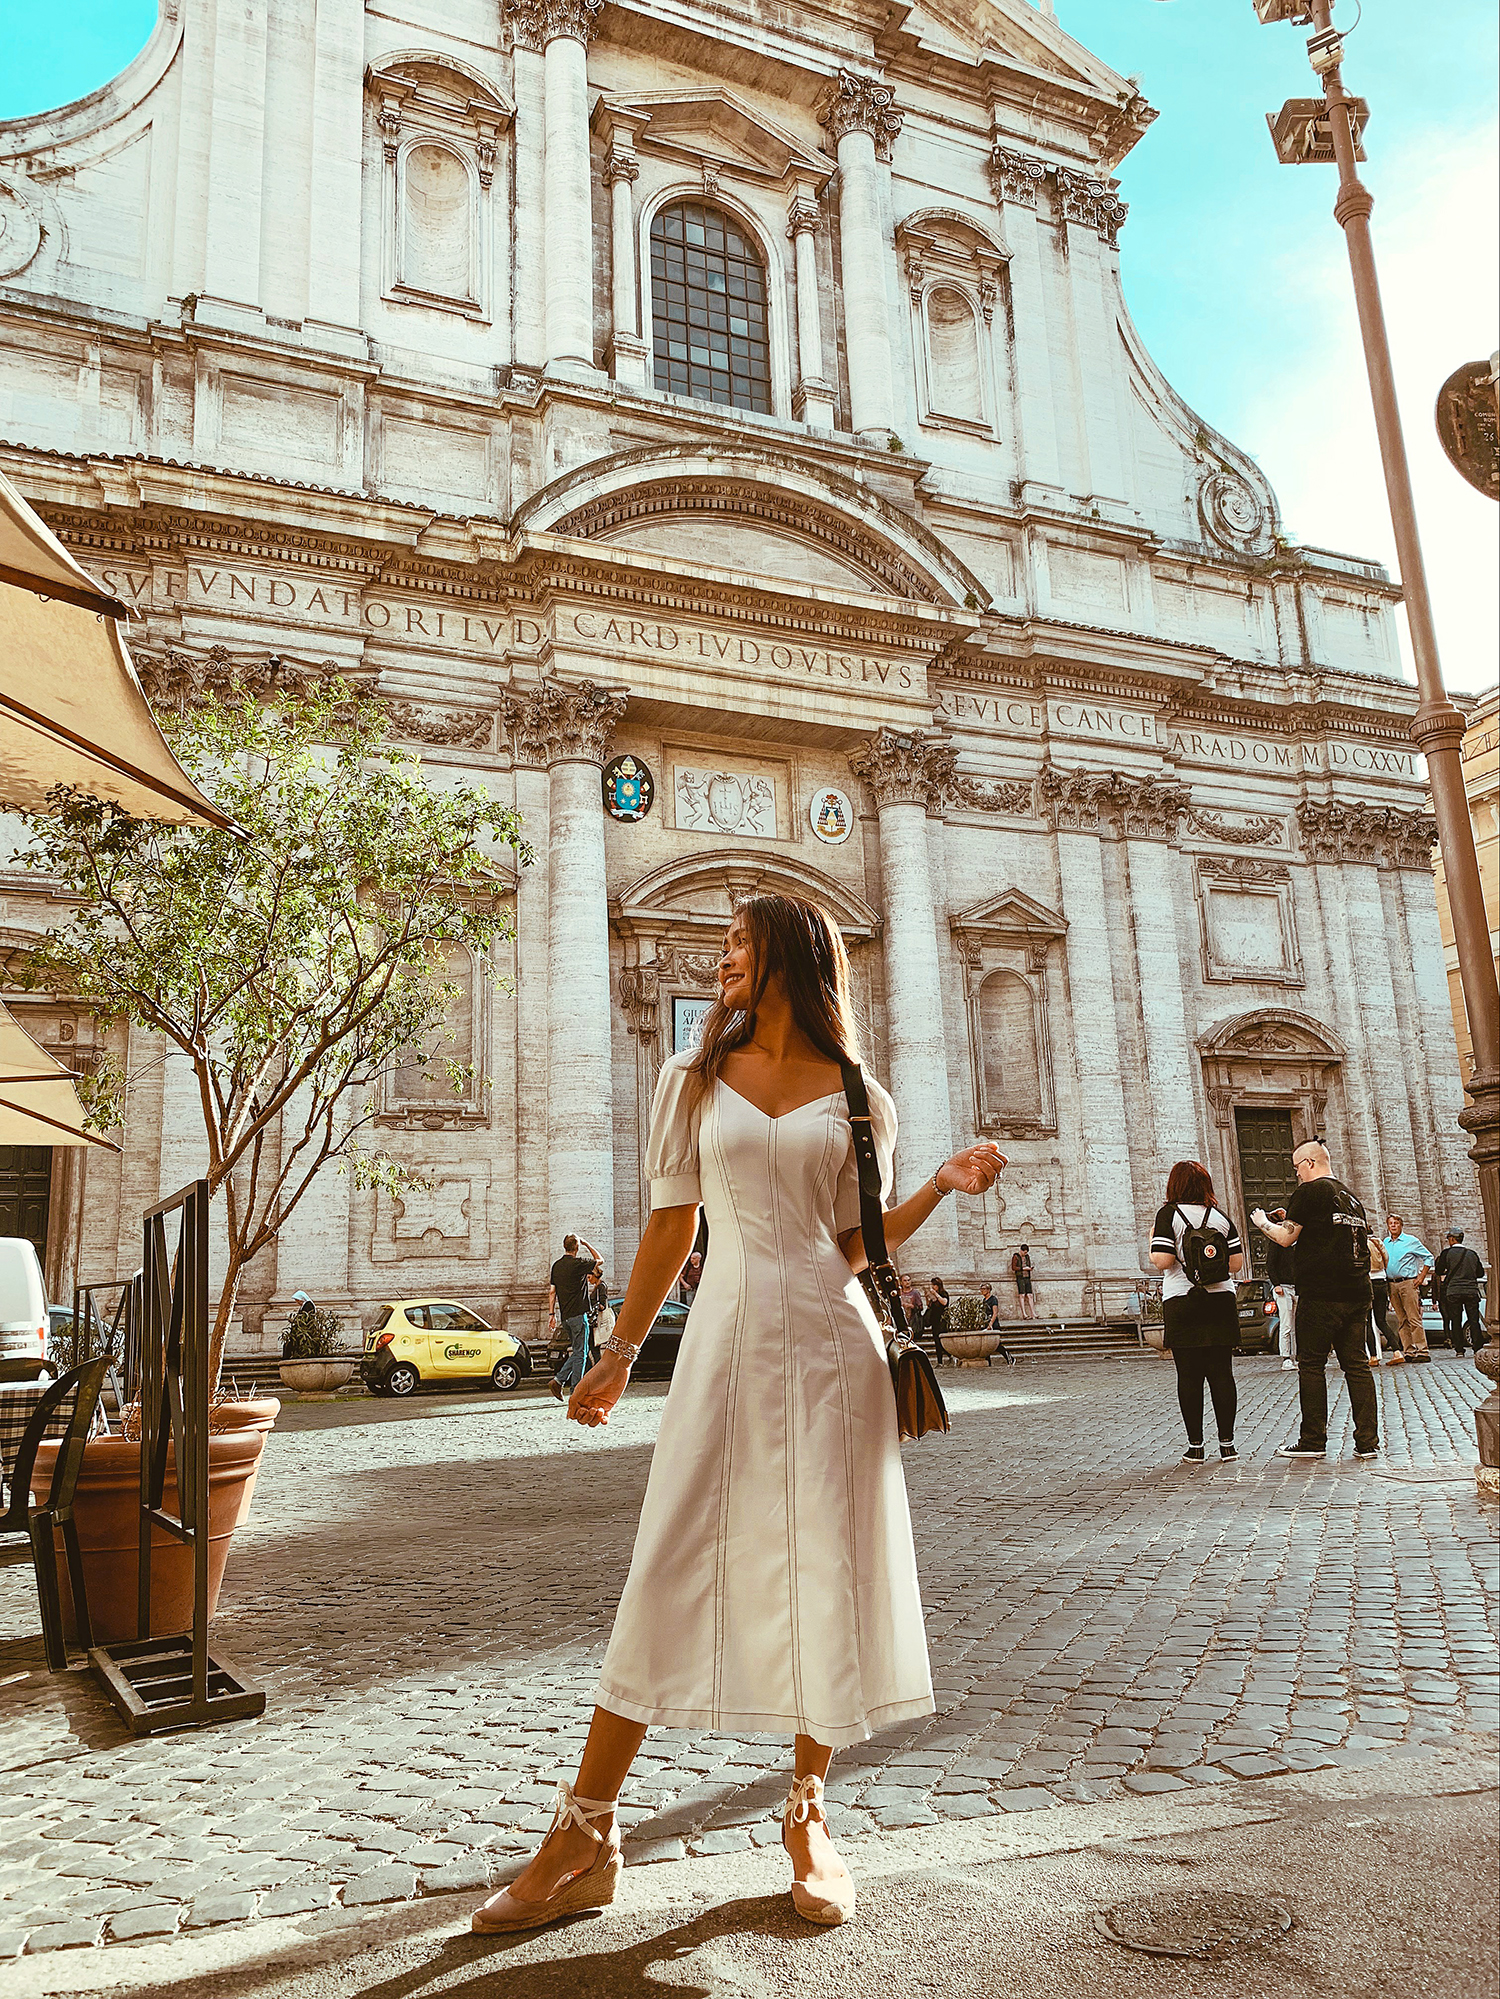 In front of one of the many churches in Rome